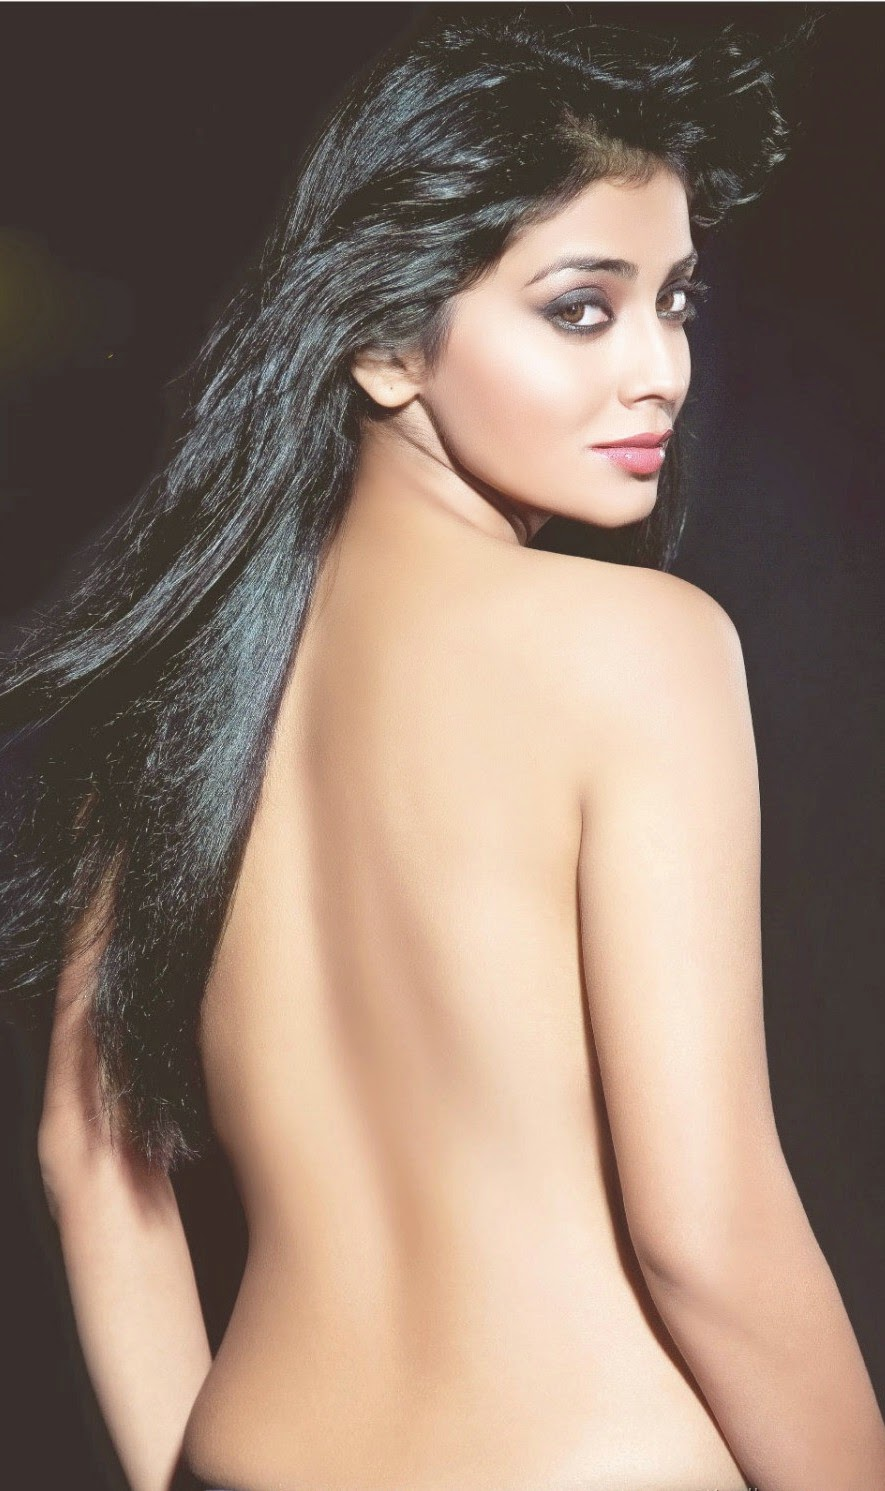 Shriya Saran hot nude photo